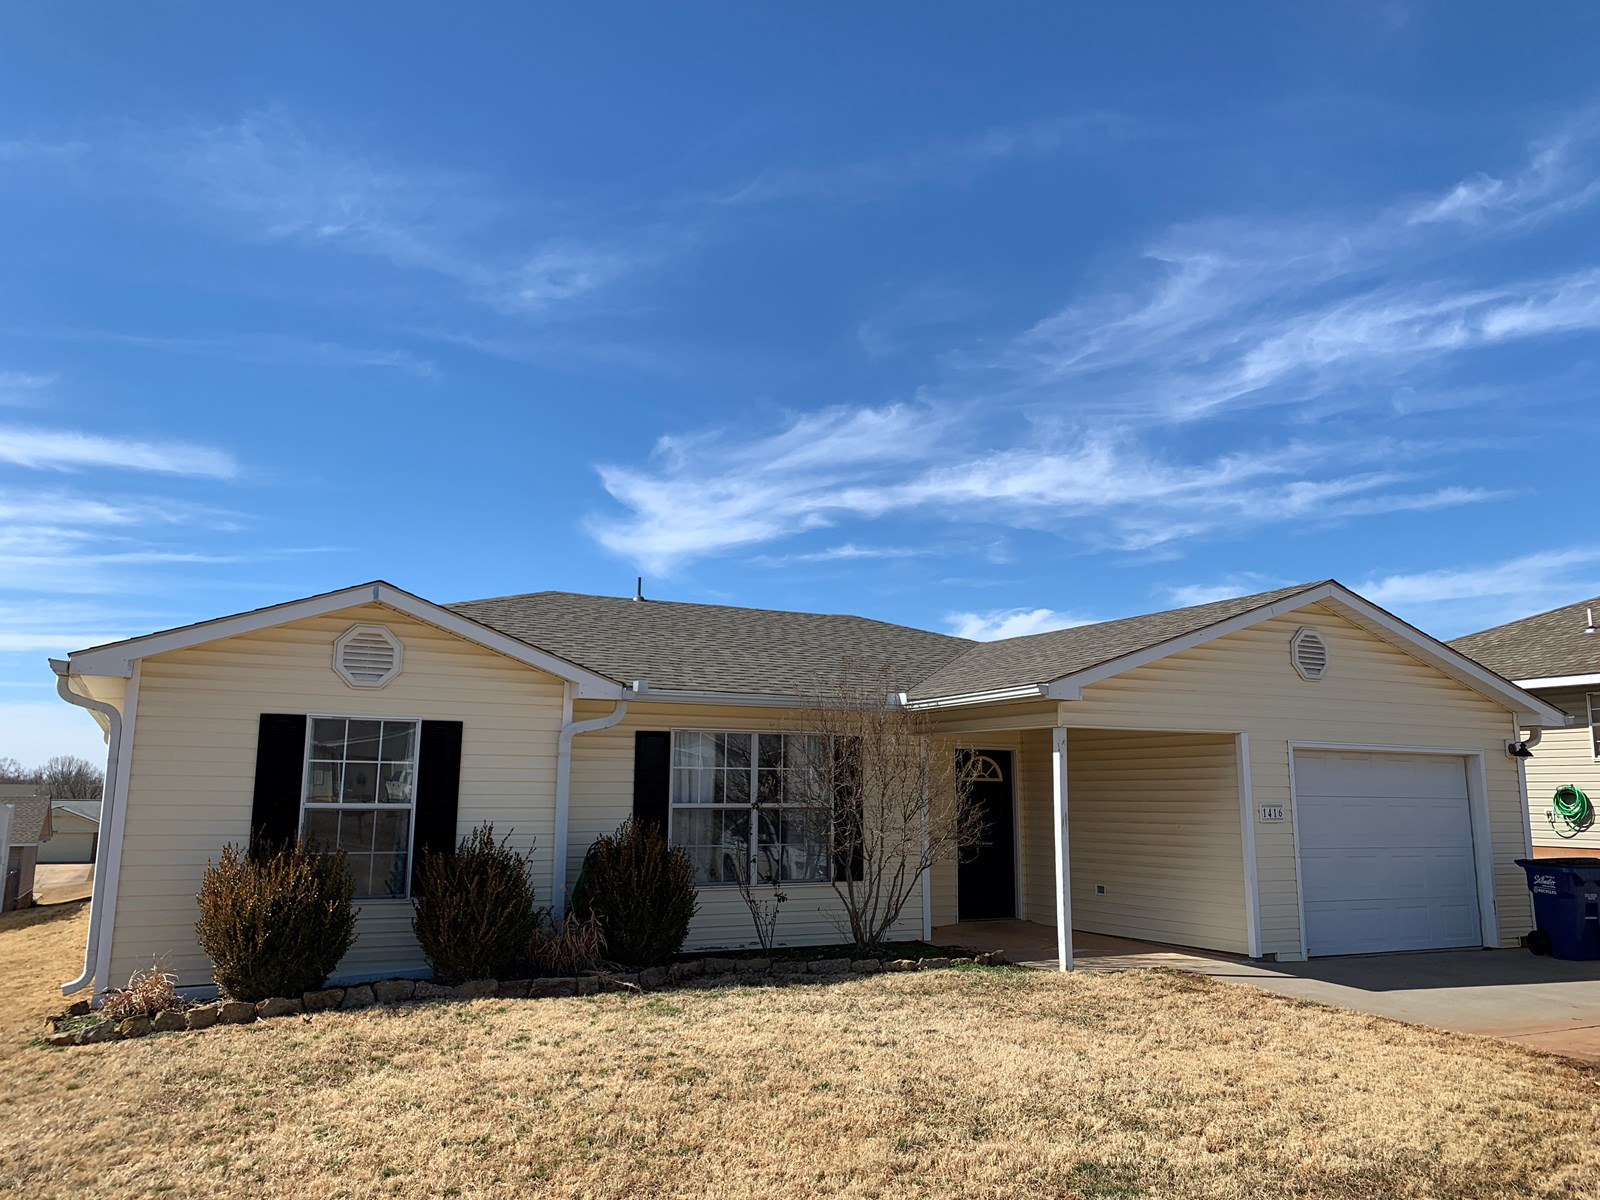 Investment Property for Sale | Home near OSU & Amenities